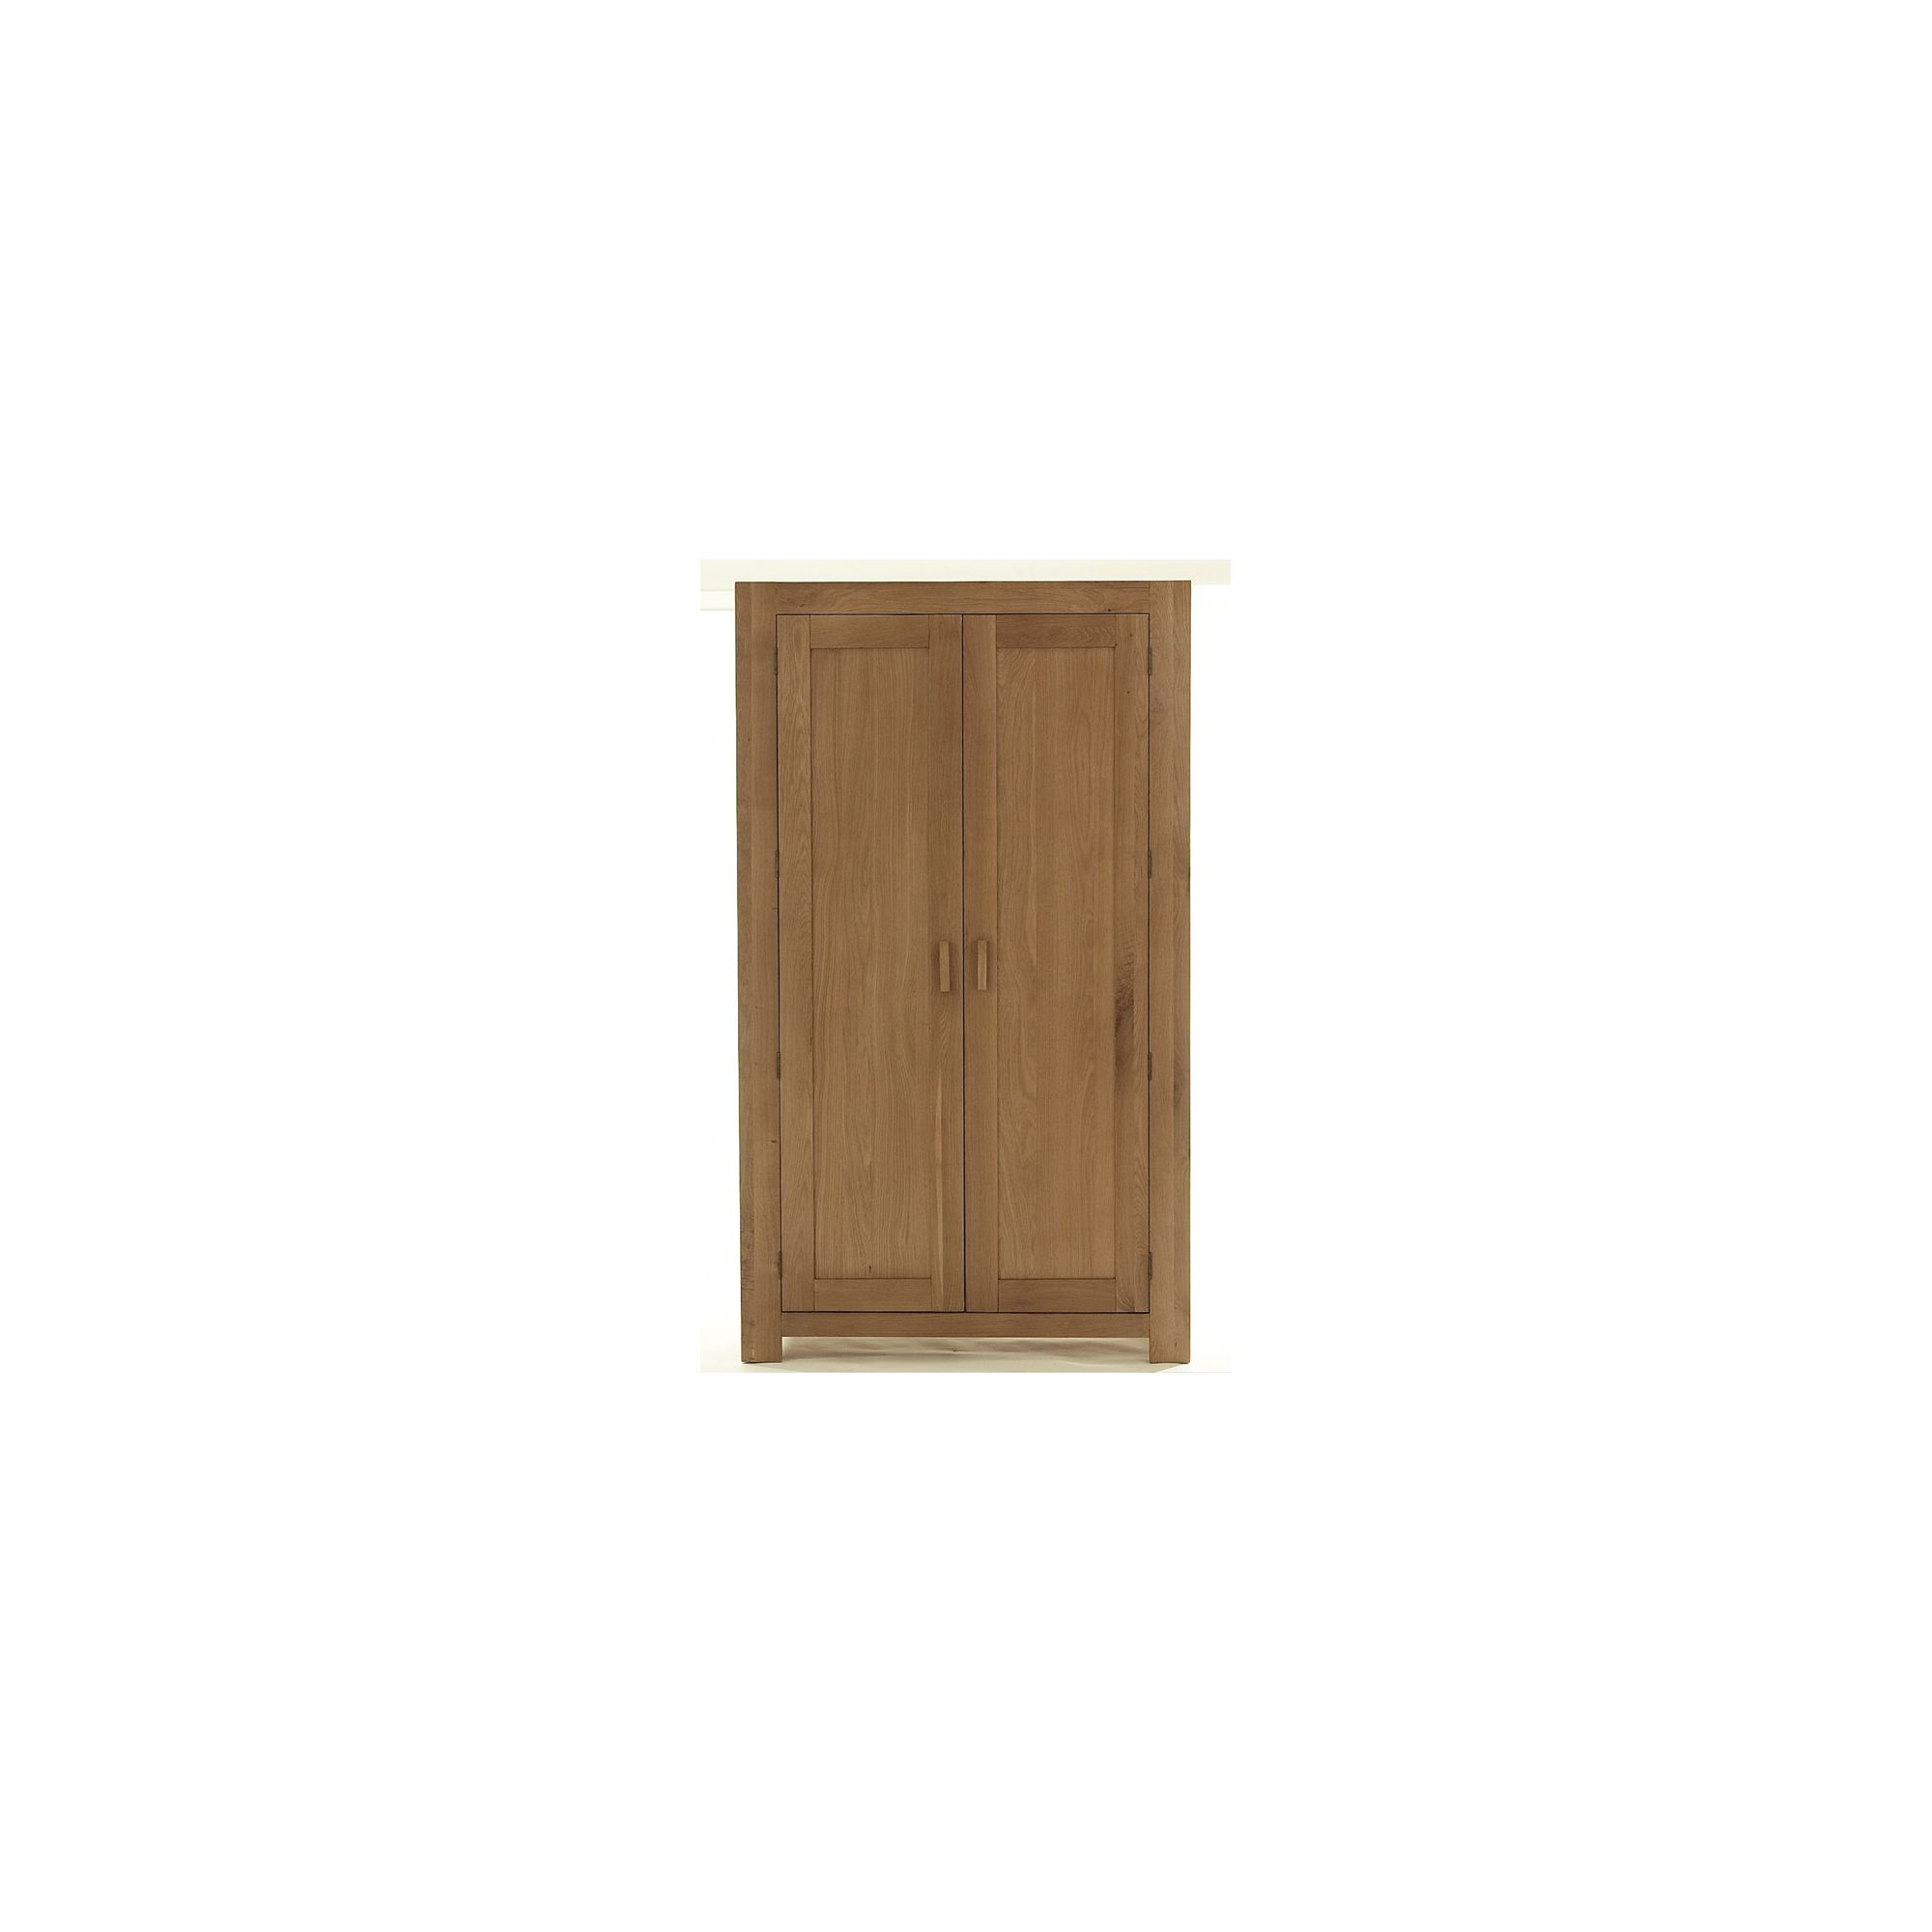 Thorndon Block Bedroom Full Hanging Wardrobe in Natural Matured Oak at Tesco Direct